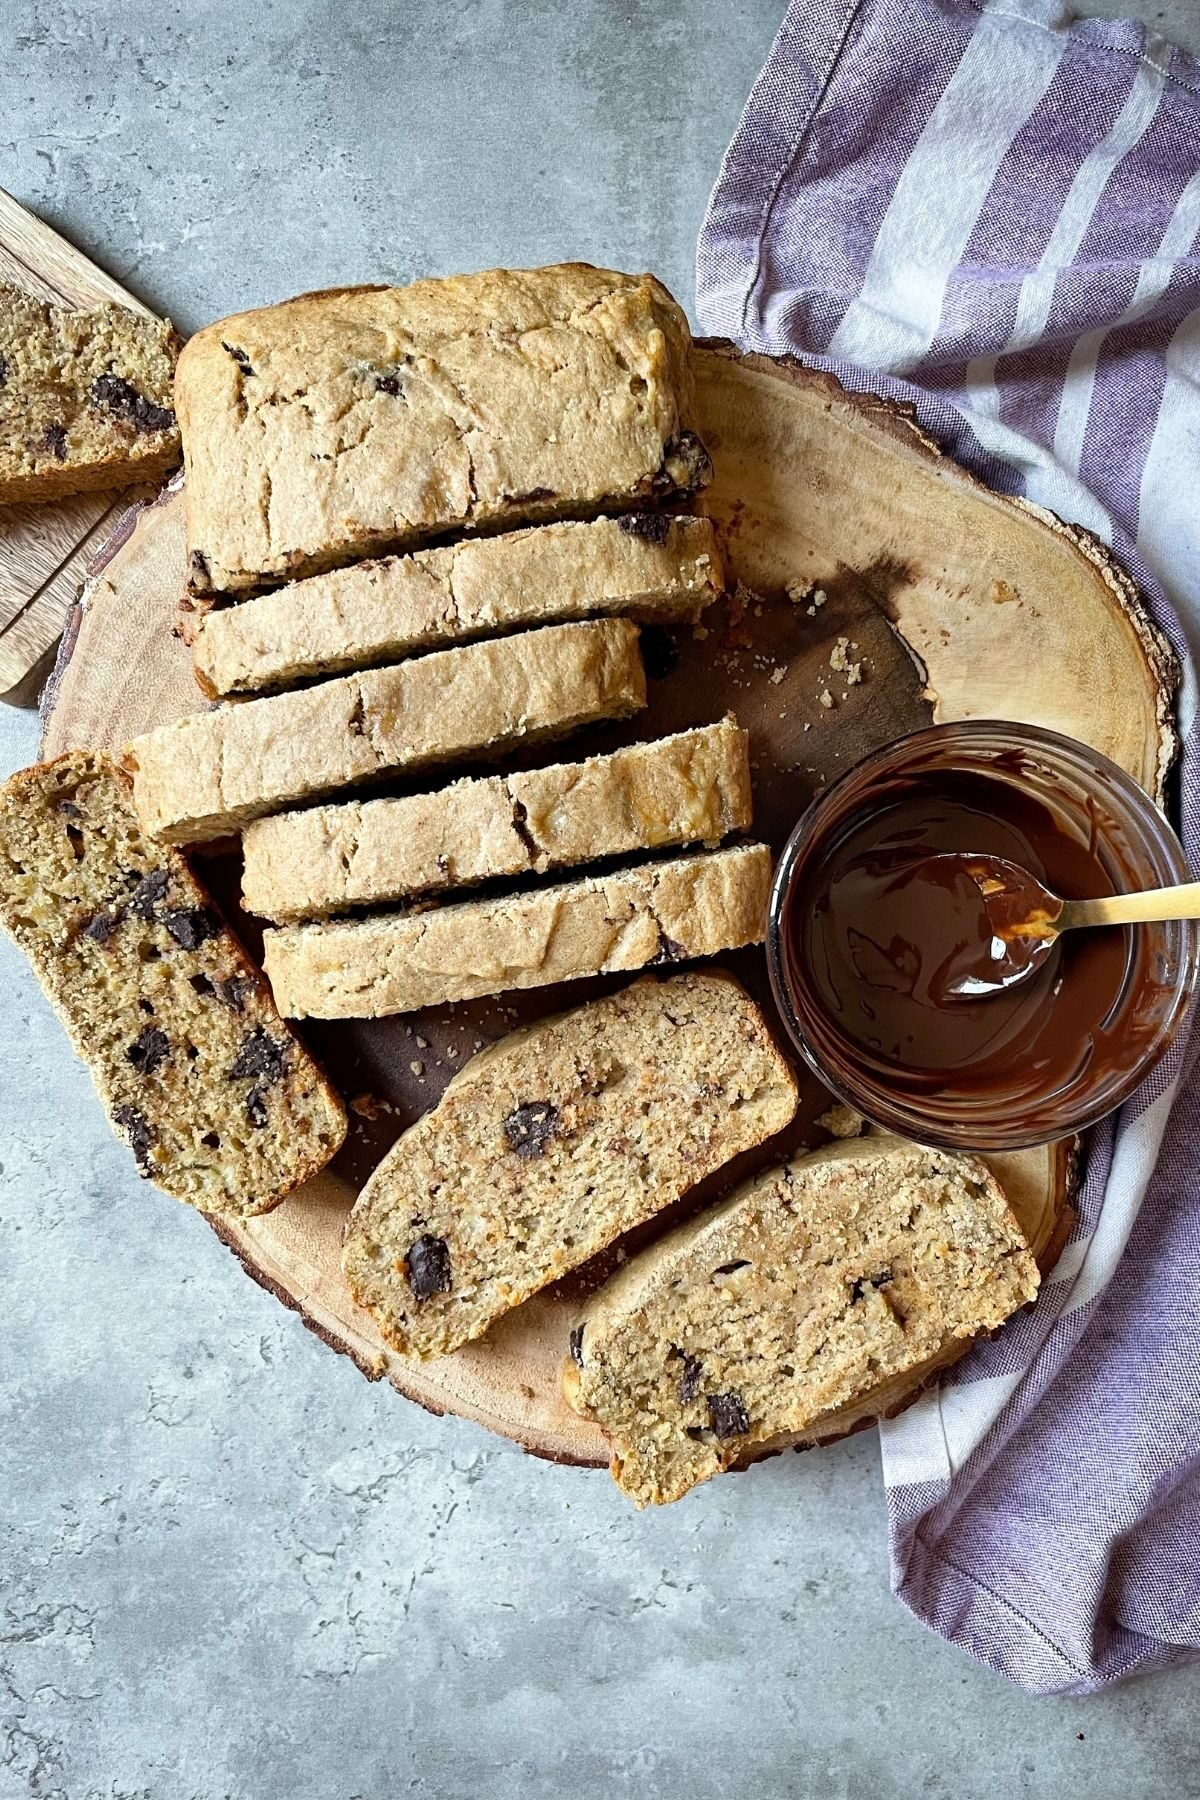 banana bread on wooden board with chocolate